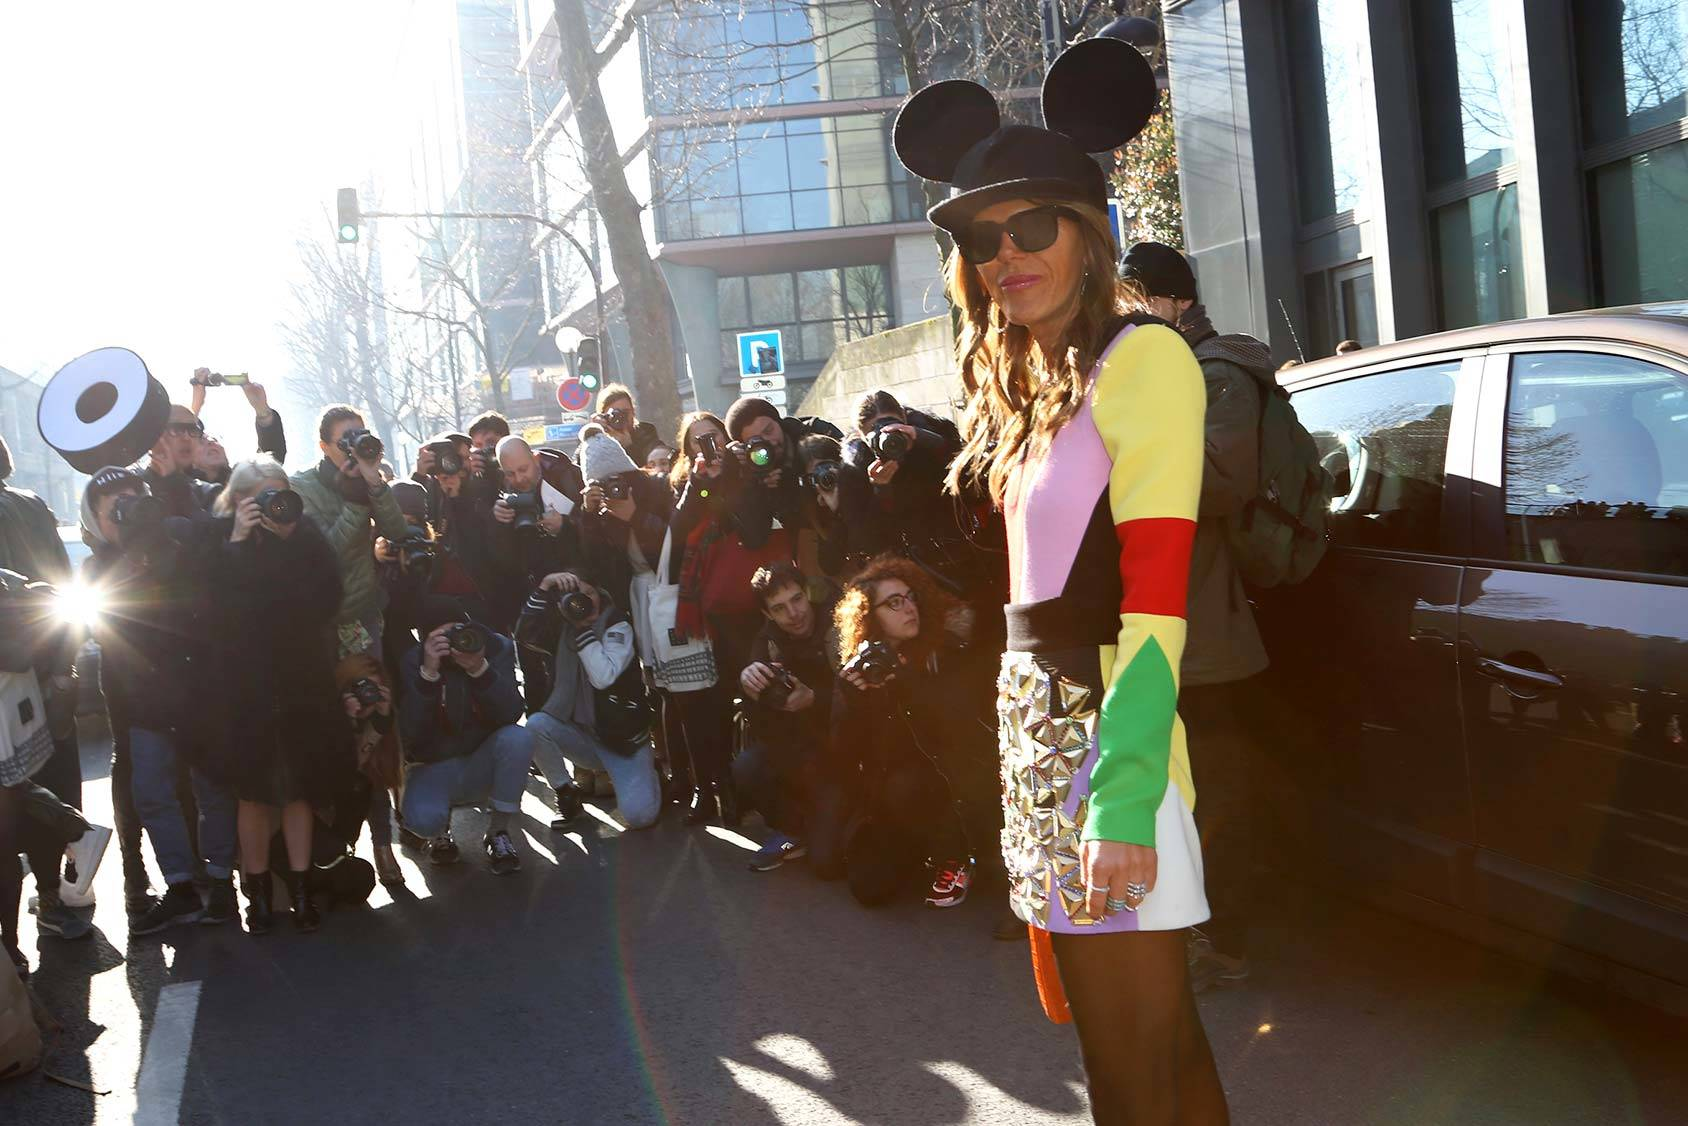 Anna Dello Russo, All Over Press